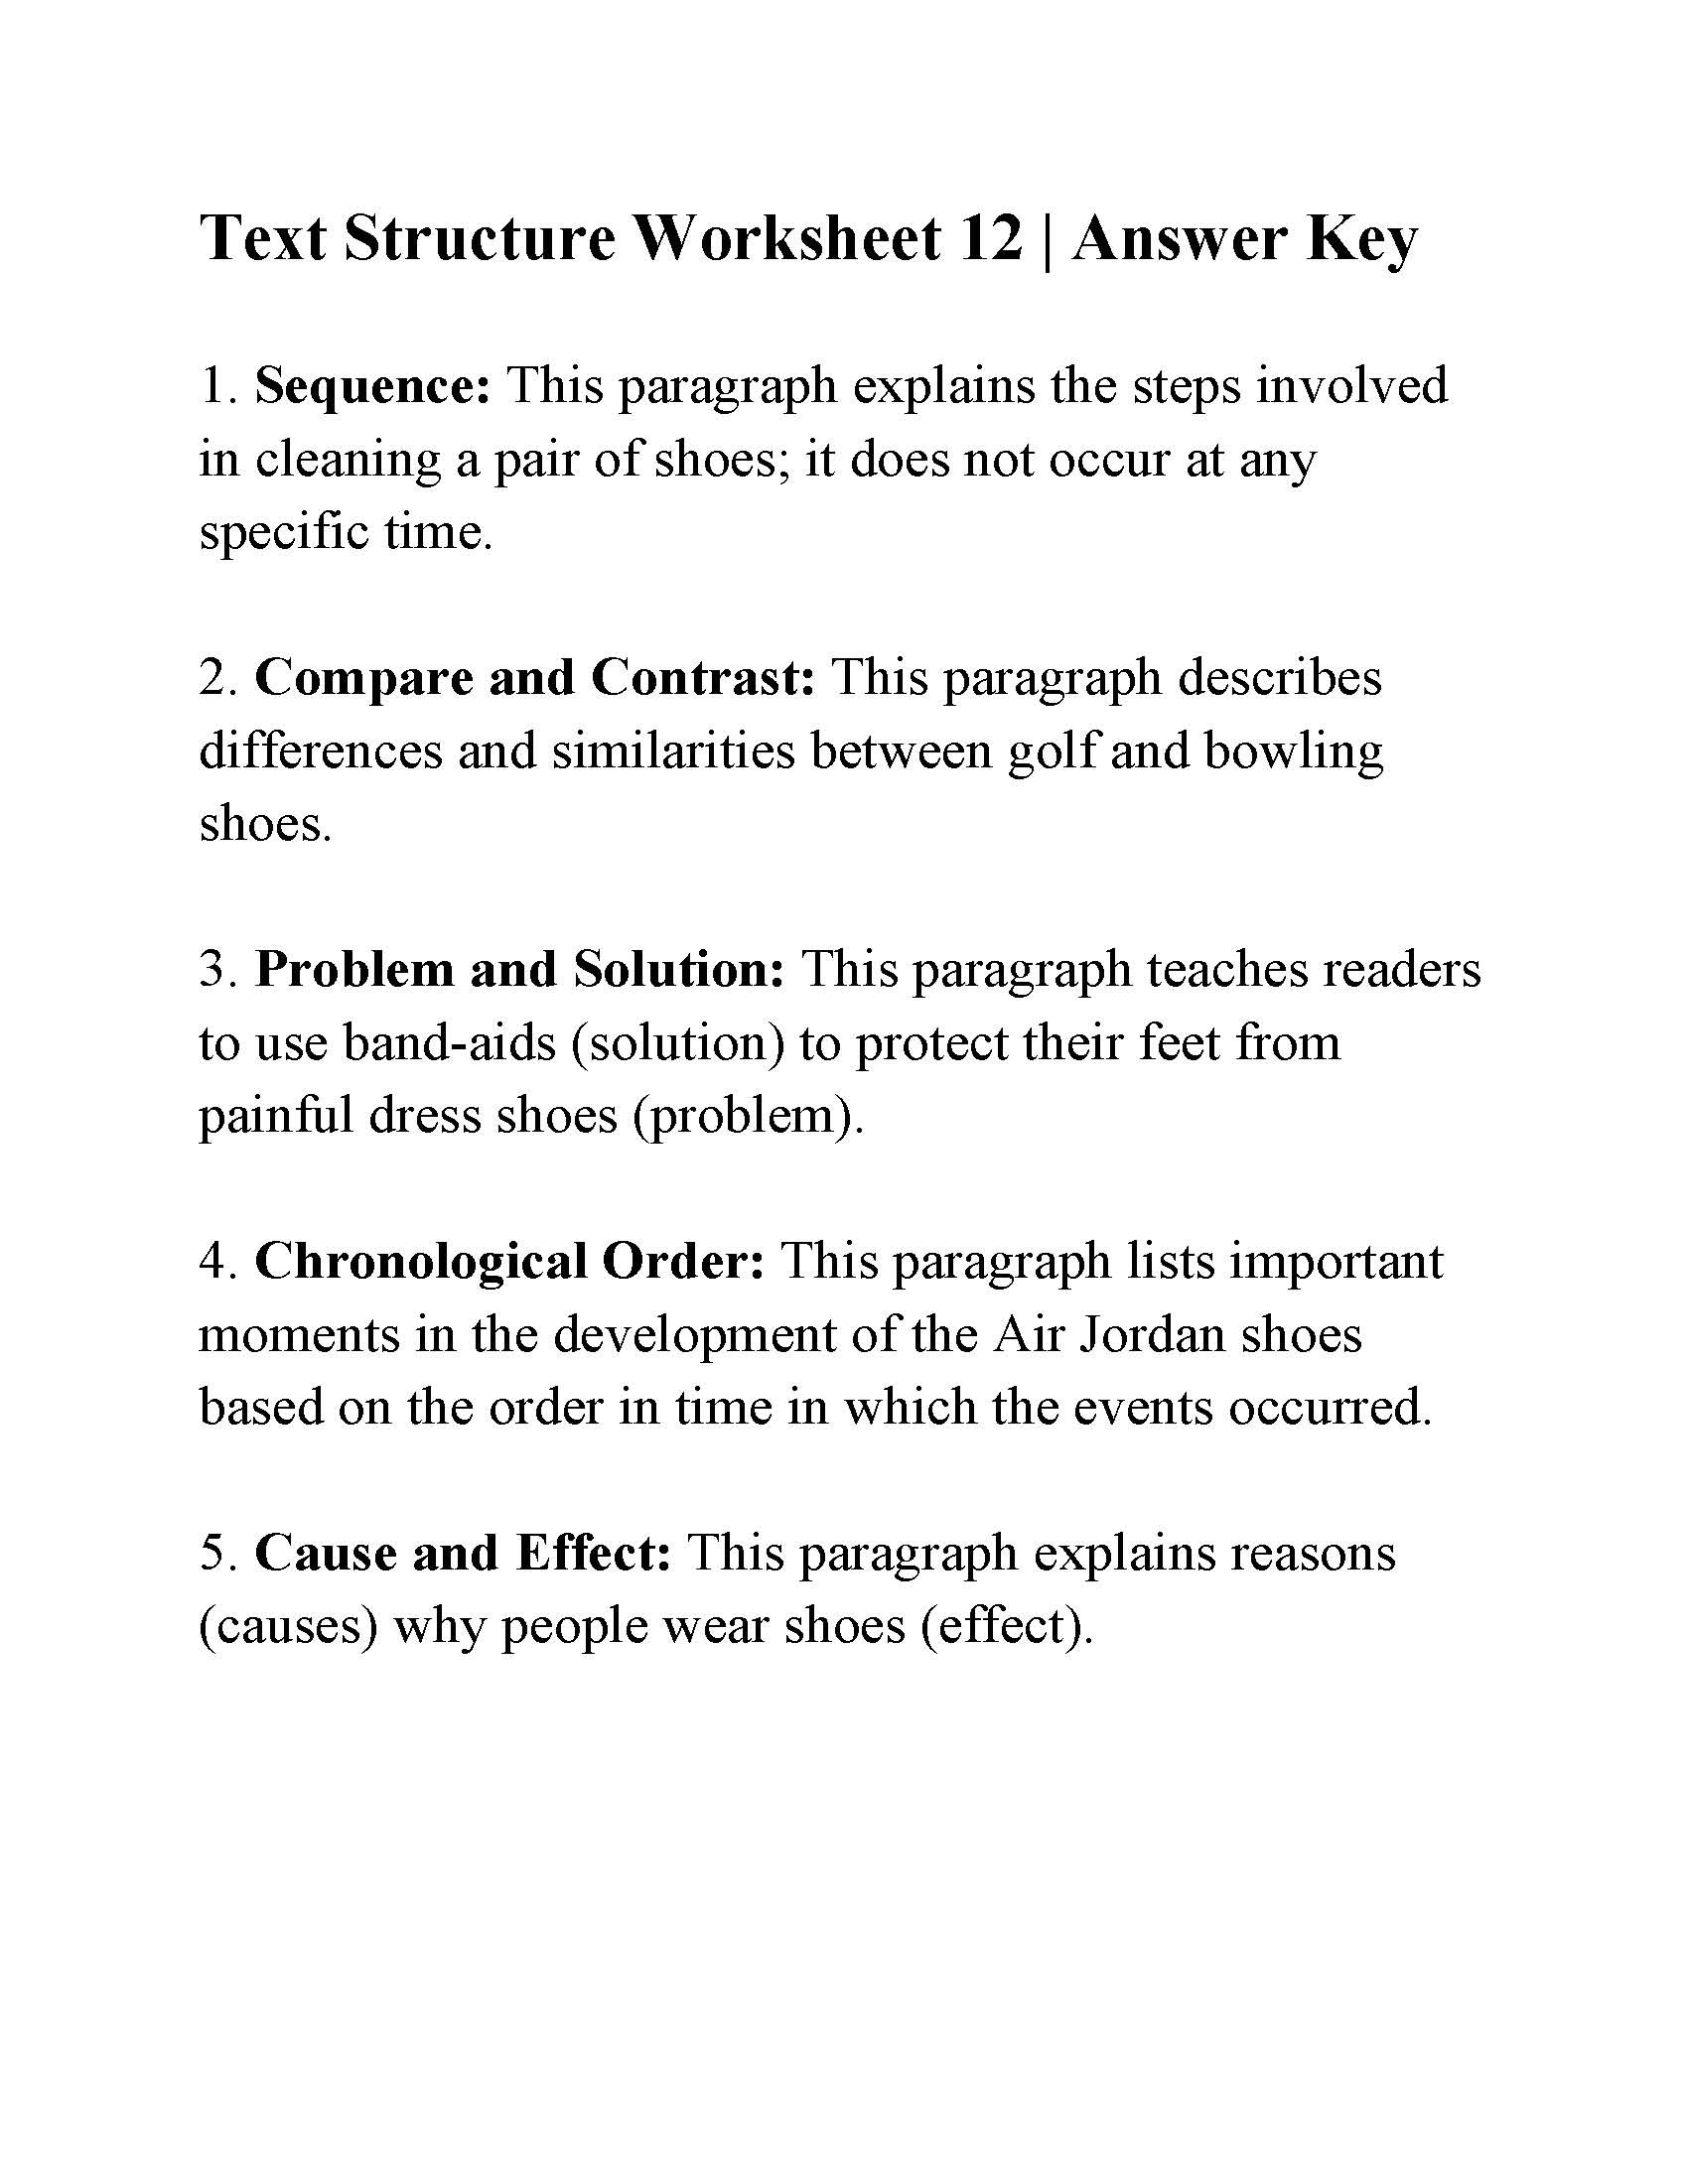 Text Structure 3rd Grade Worksheets Text Structure Worksheet Answers Worksheets Math Sum solver